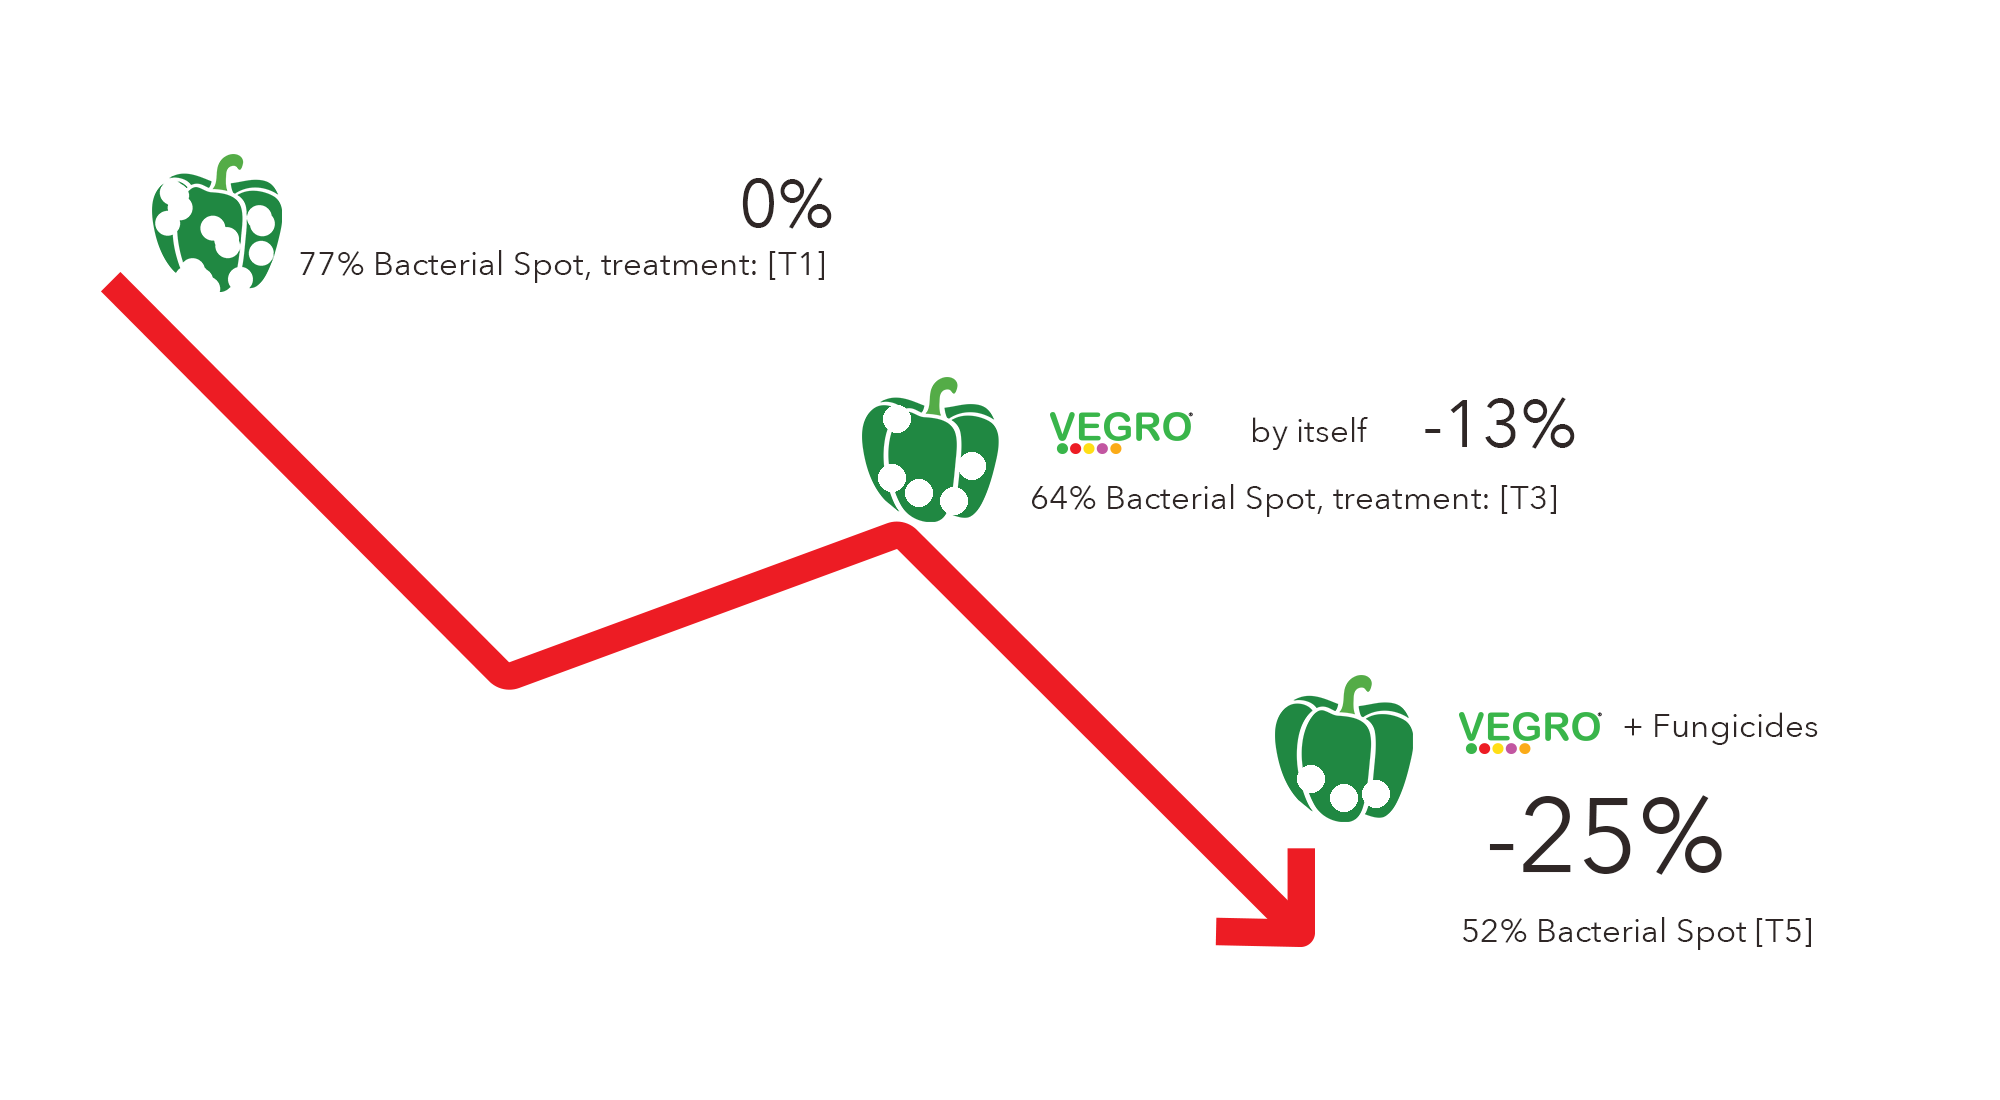 [T1] is the Grower Std., [T3] Vegro added simply to Grow. Std. and [T5] Grow Std + Fungicides + Vegro